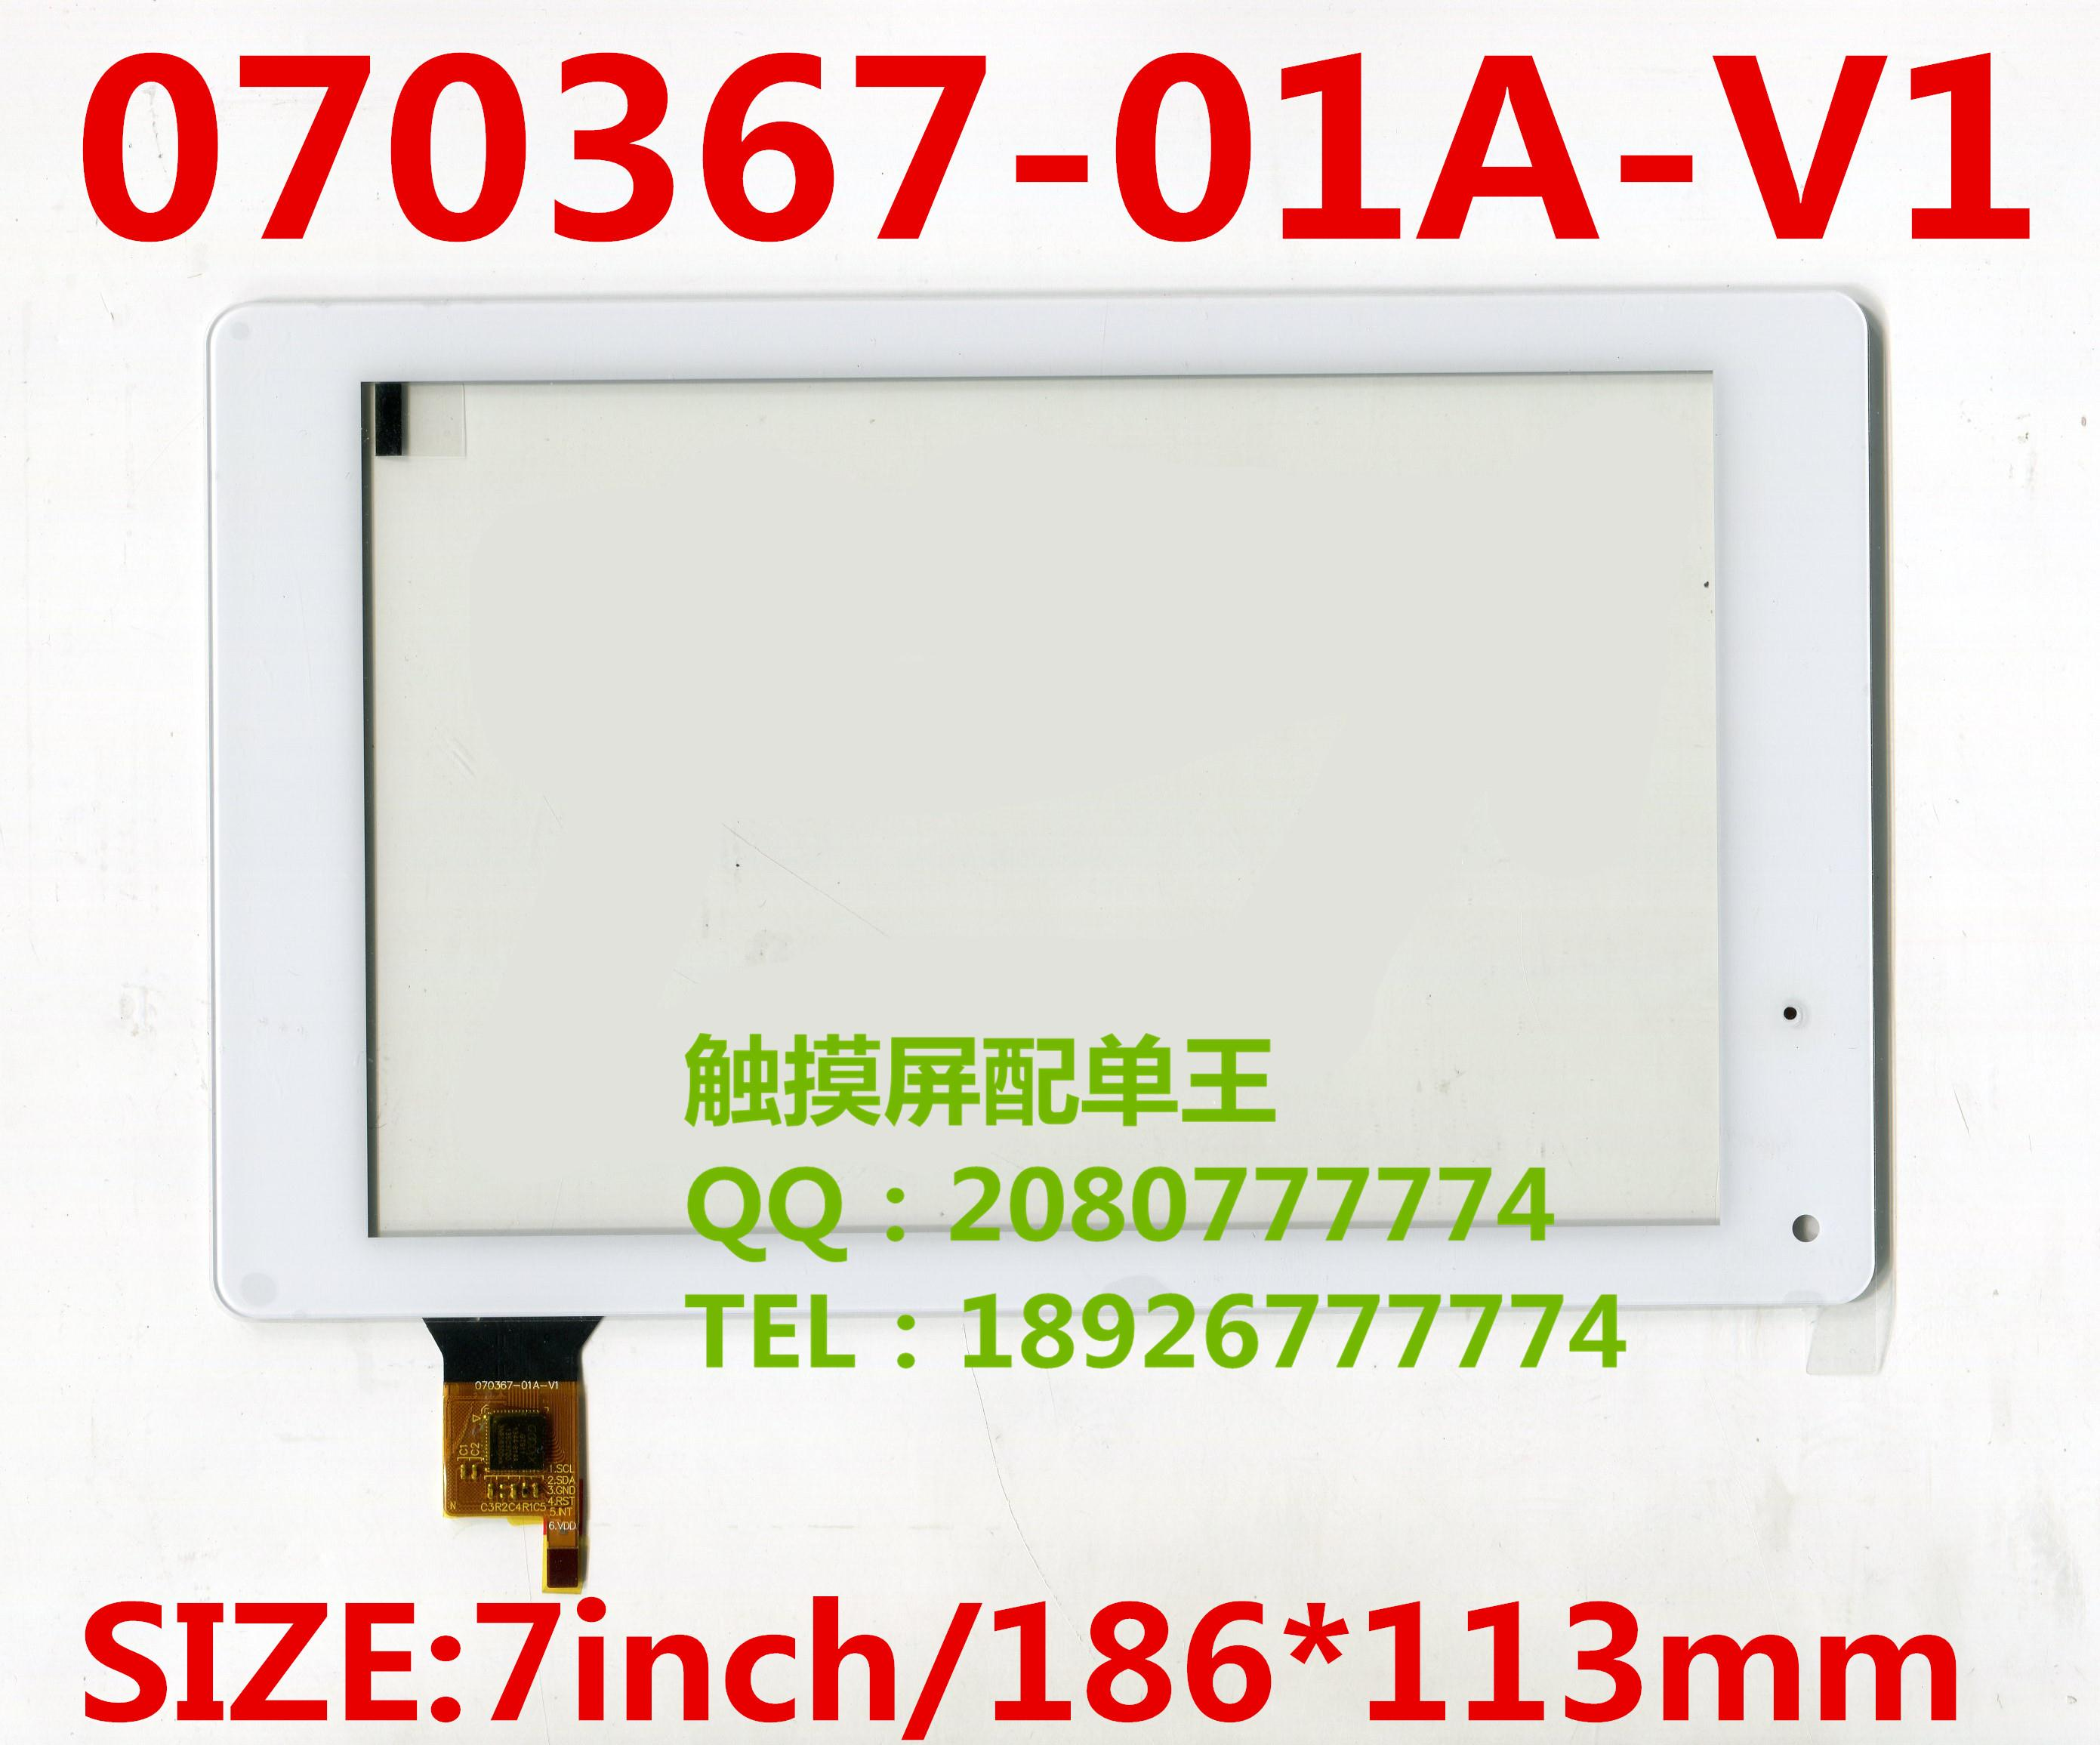 7inch for teXet TM-7055HD tablet pc capacitive touch screen glass digitizer panel 070367-01A-V1 7inch for texet tm 7876 x pad quad 7 3g tablet pc capacitive touch screen glass digitizer panel